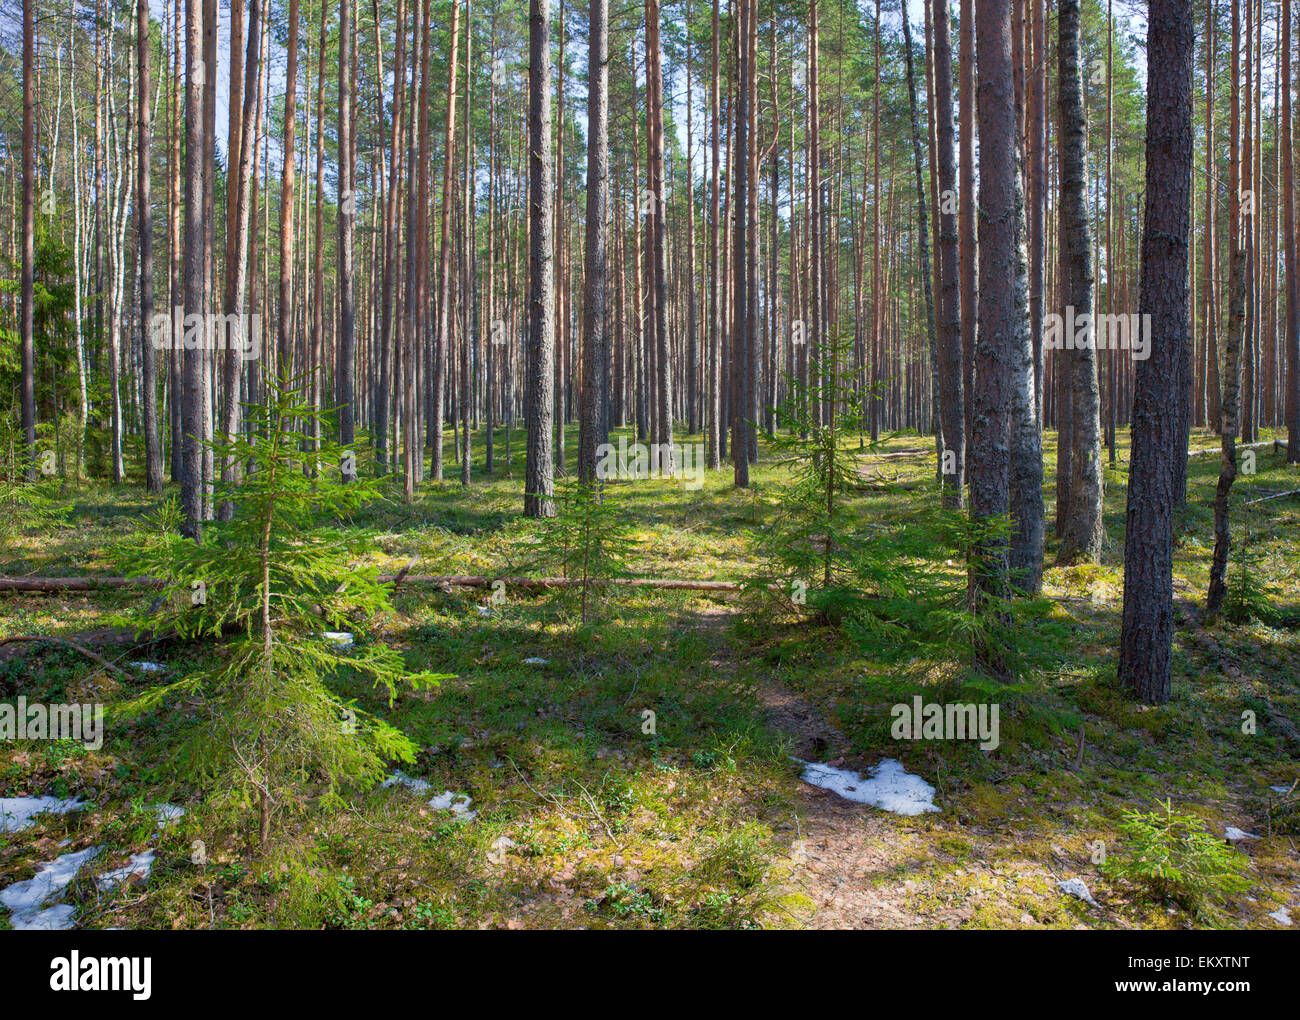 coniferous forest - Stock Image